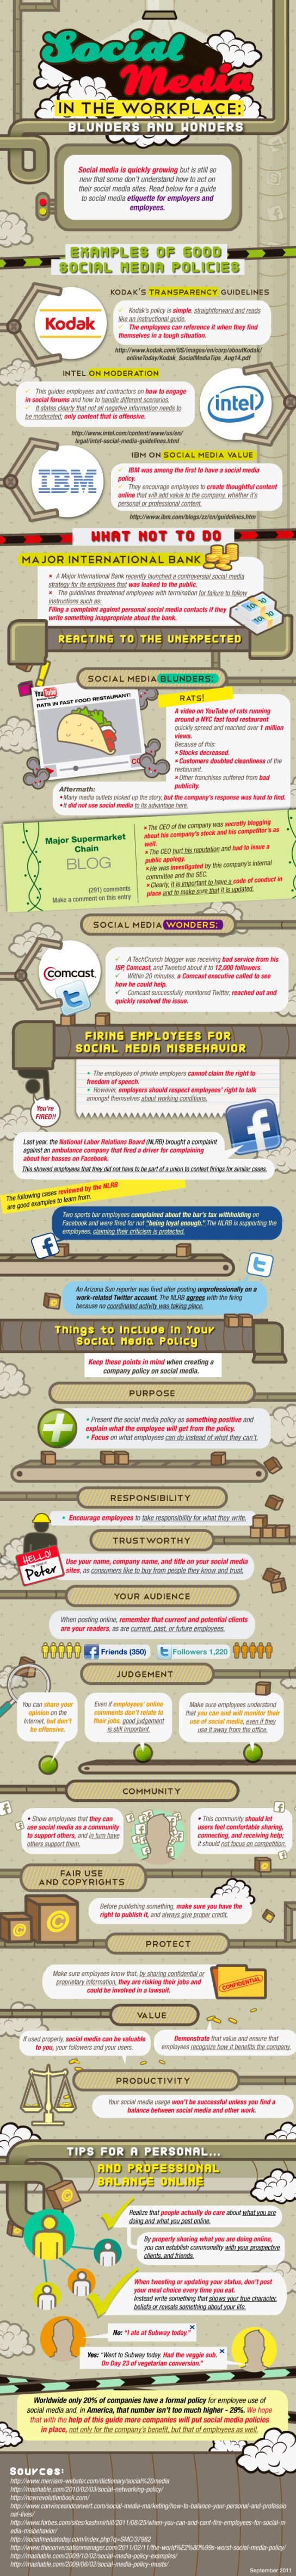 Social Media in the Workplace: Blunders and Wonders